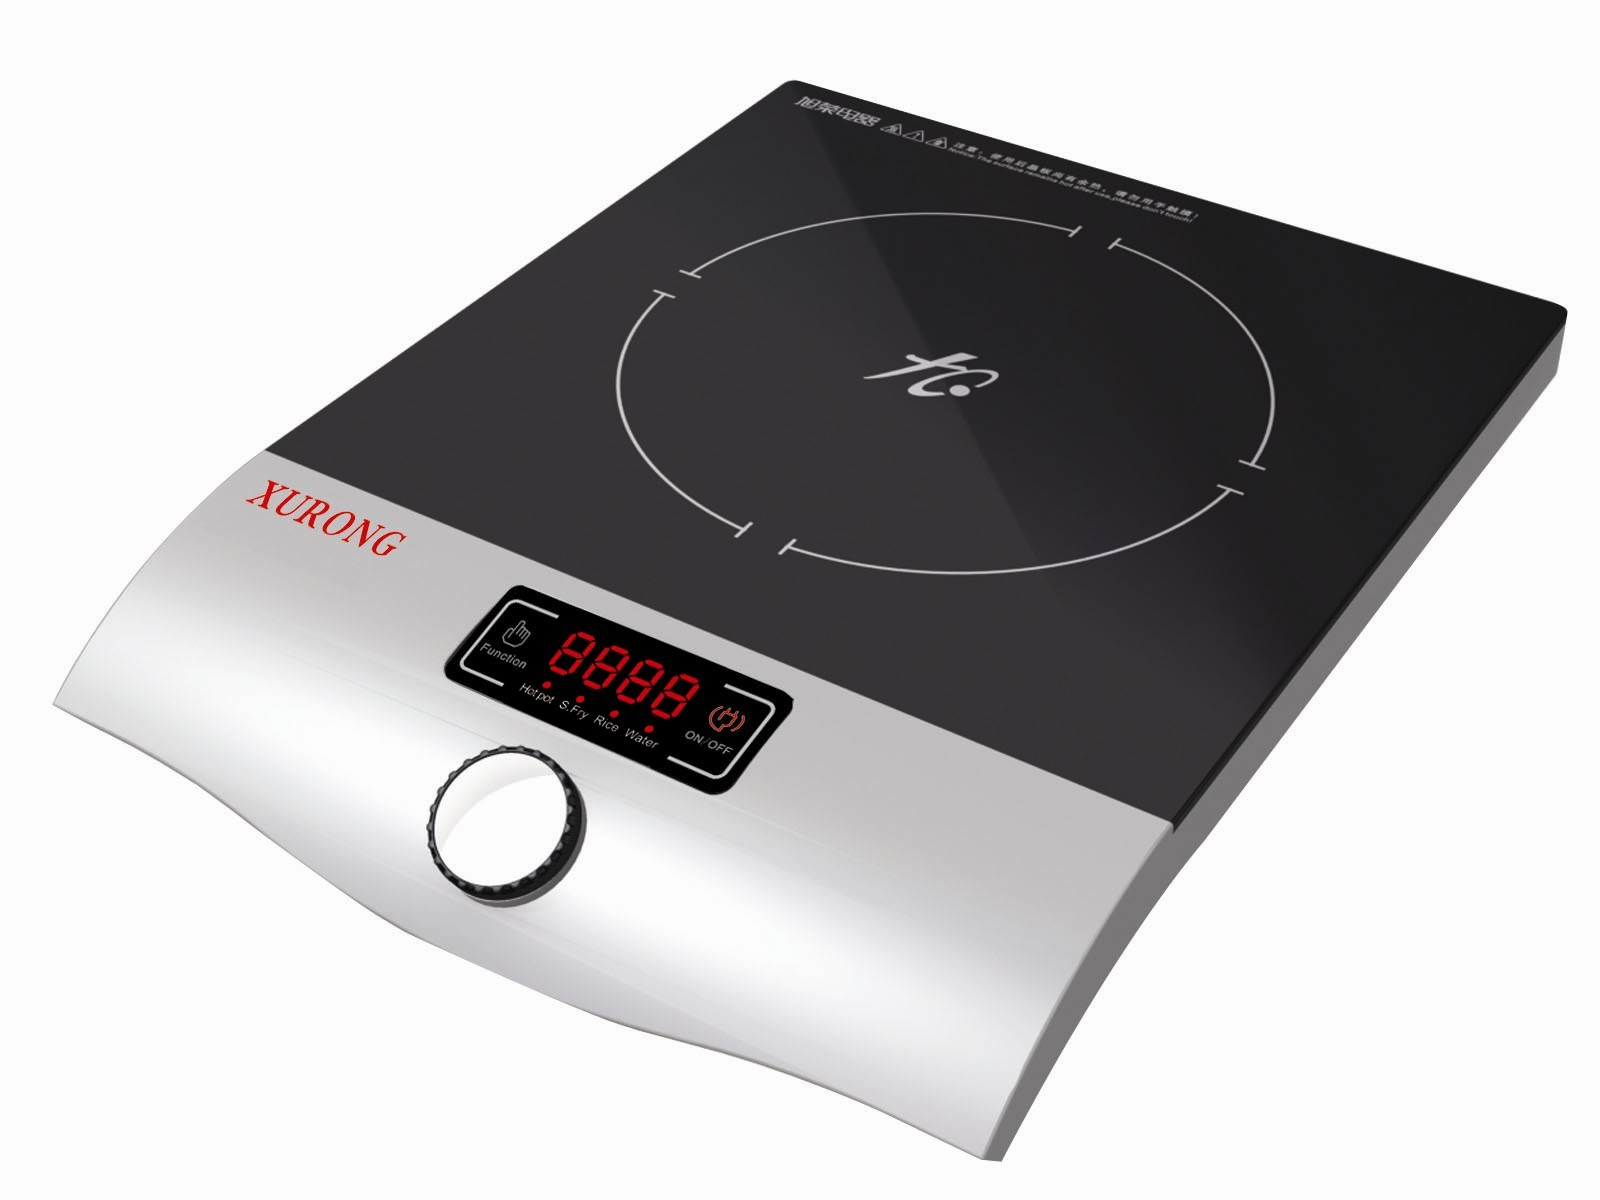 Induction Hot Plate Zyc Ic037 New Induction Cooker Easy To Clean Panel